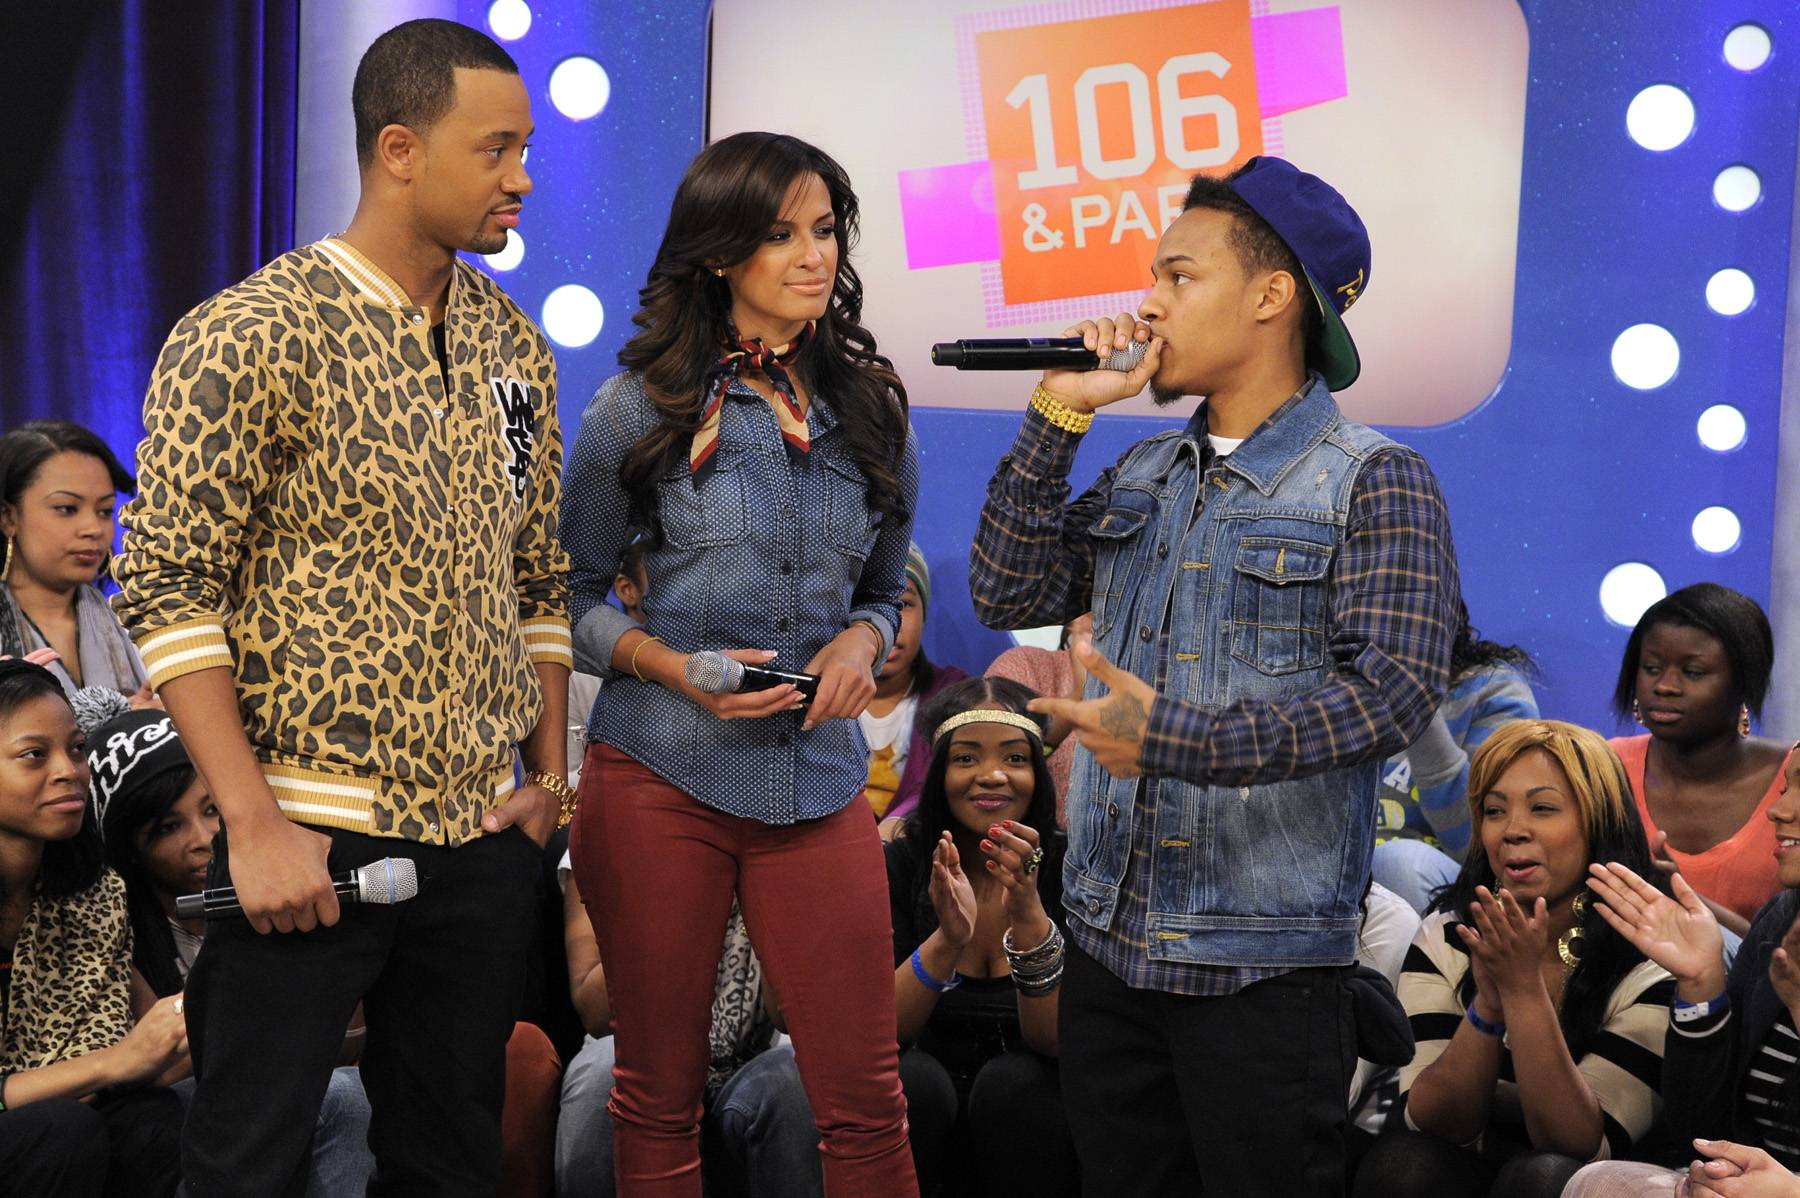 I Got This - Bow Wow with Terrence J and Rocsi Diaz at 106 & Park, January 23, 2012. (Photo: John Ricard / BET)